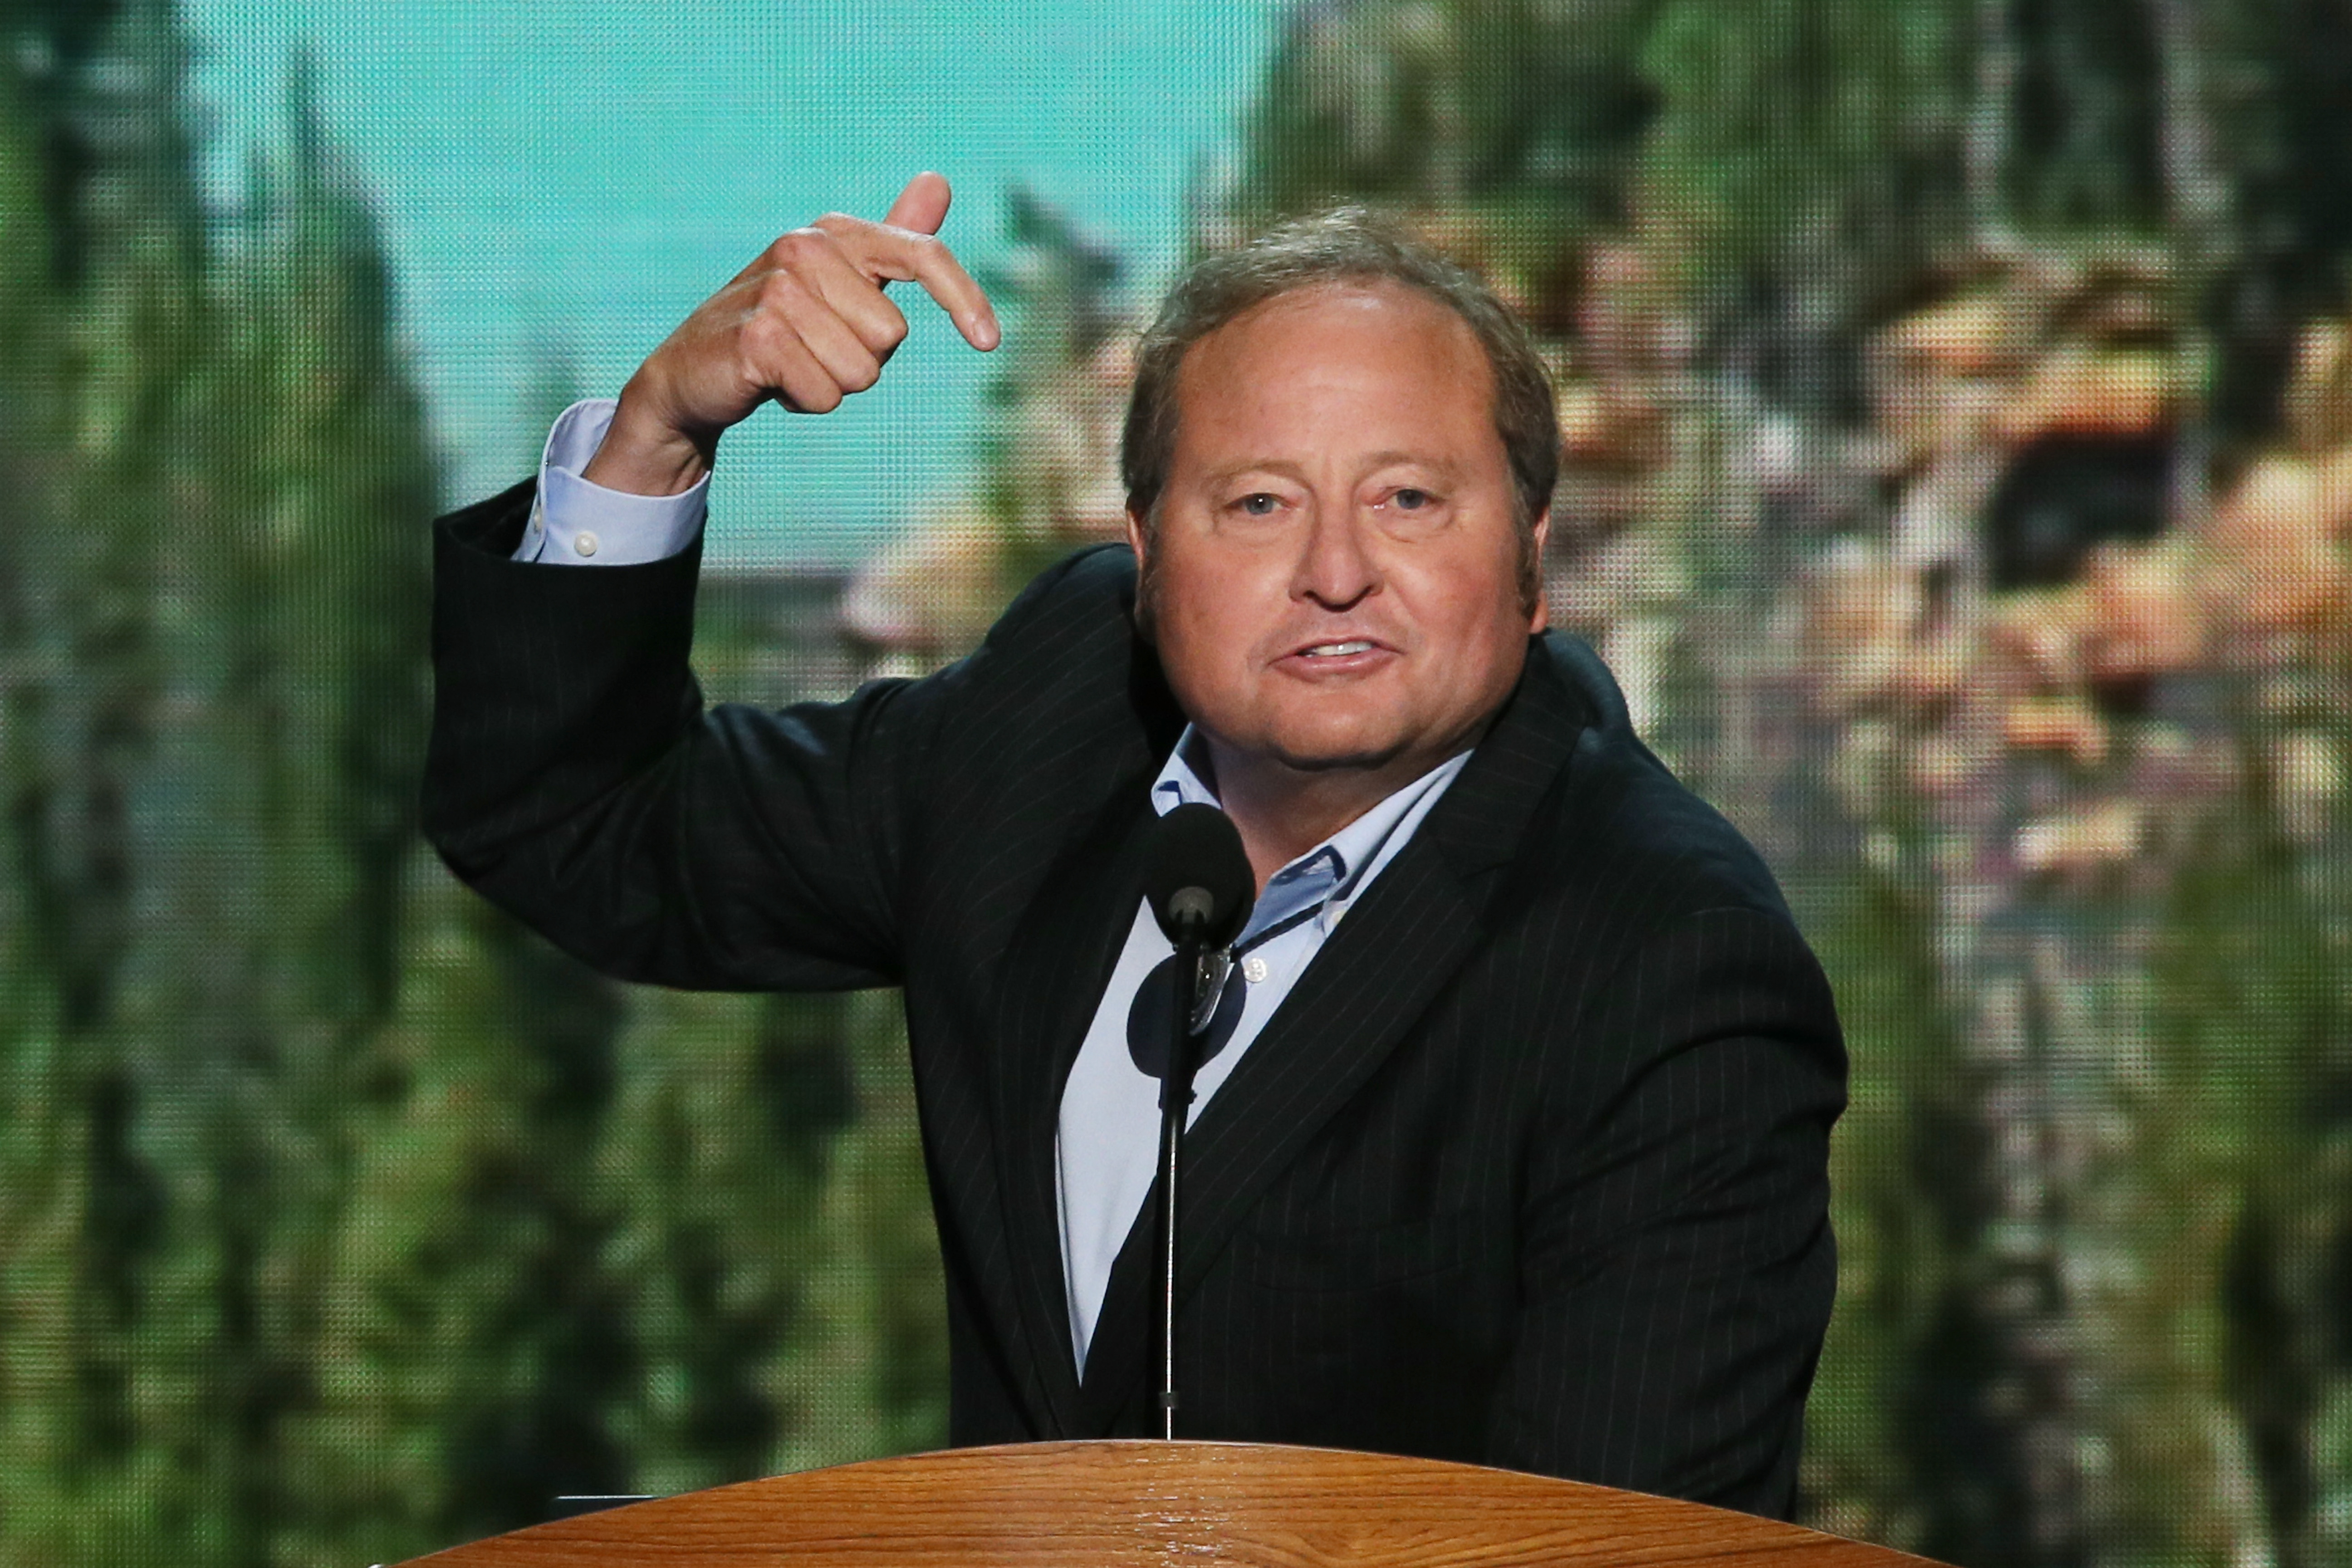 Then Montana Gov. Brian Schweitzer speaks on stage during the final day of the Democratic National Convention on September 6, 2012 in Charlotte, North Carolina.